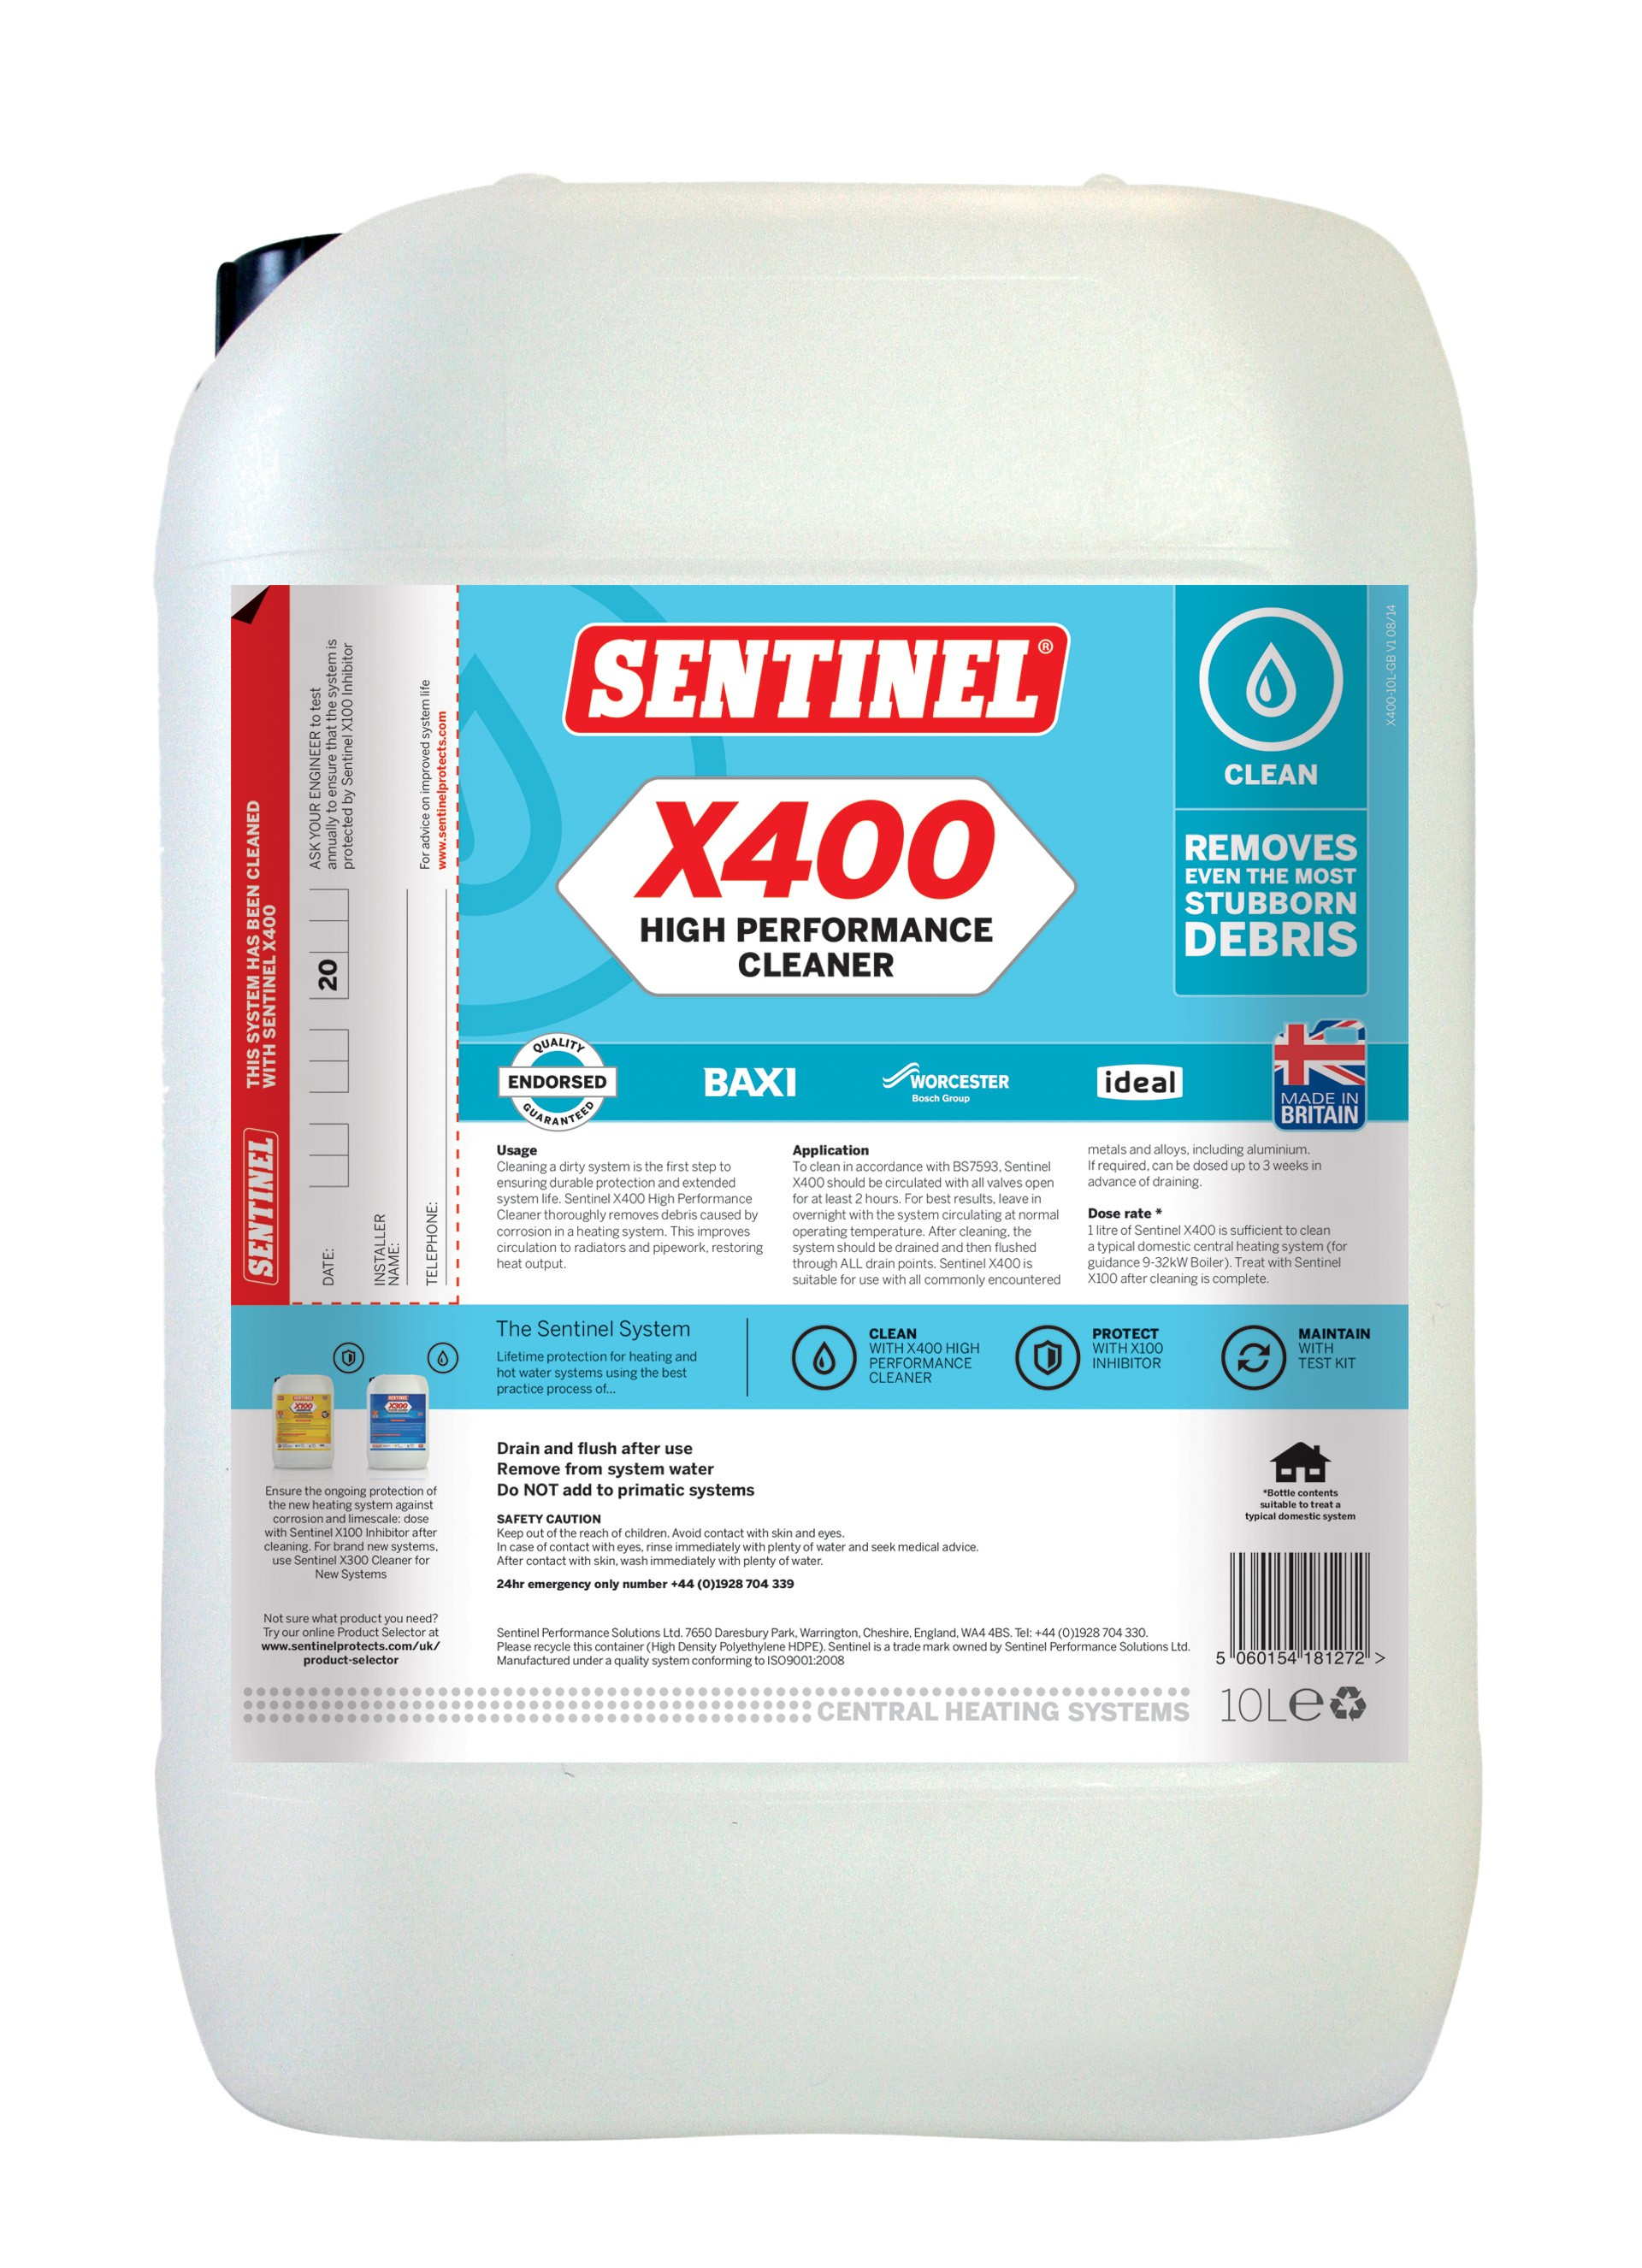 X400 High Performance Cleaner | Sentinel